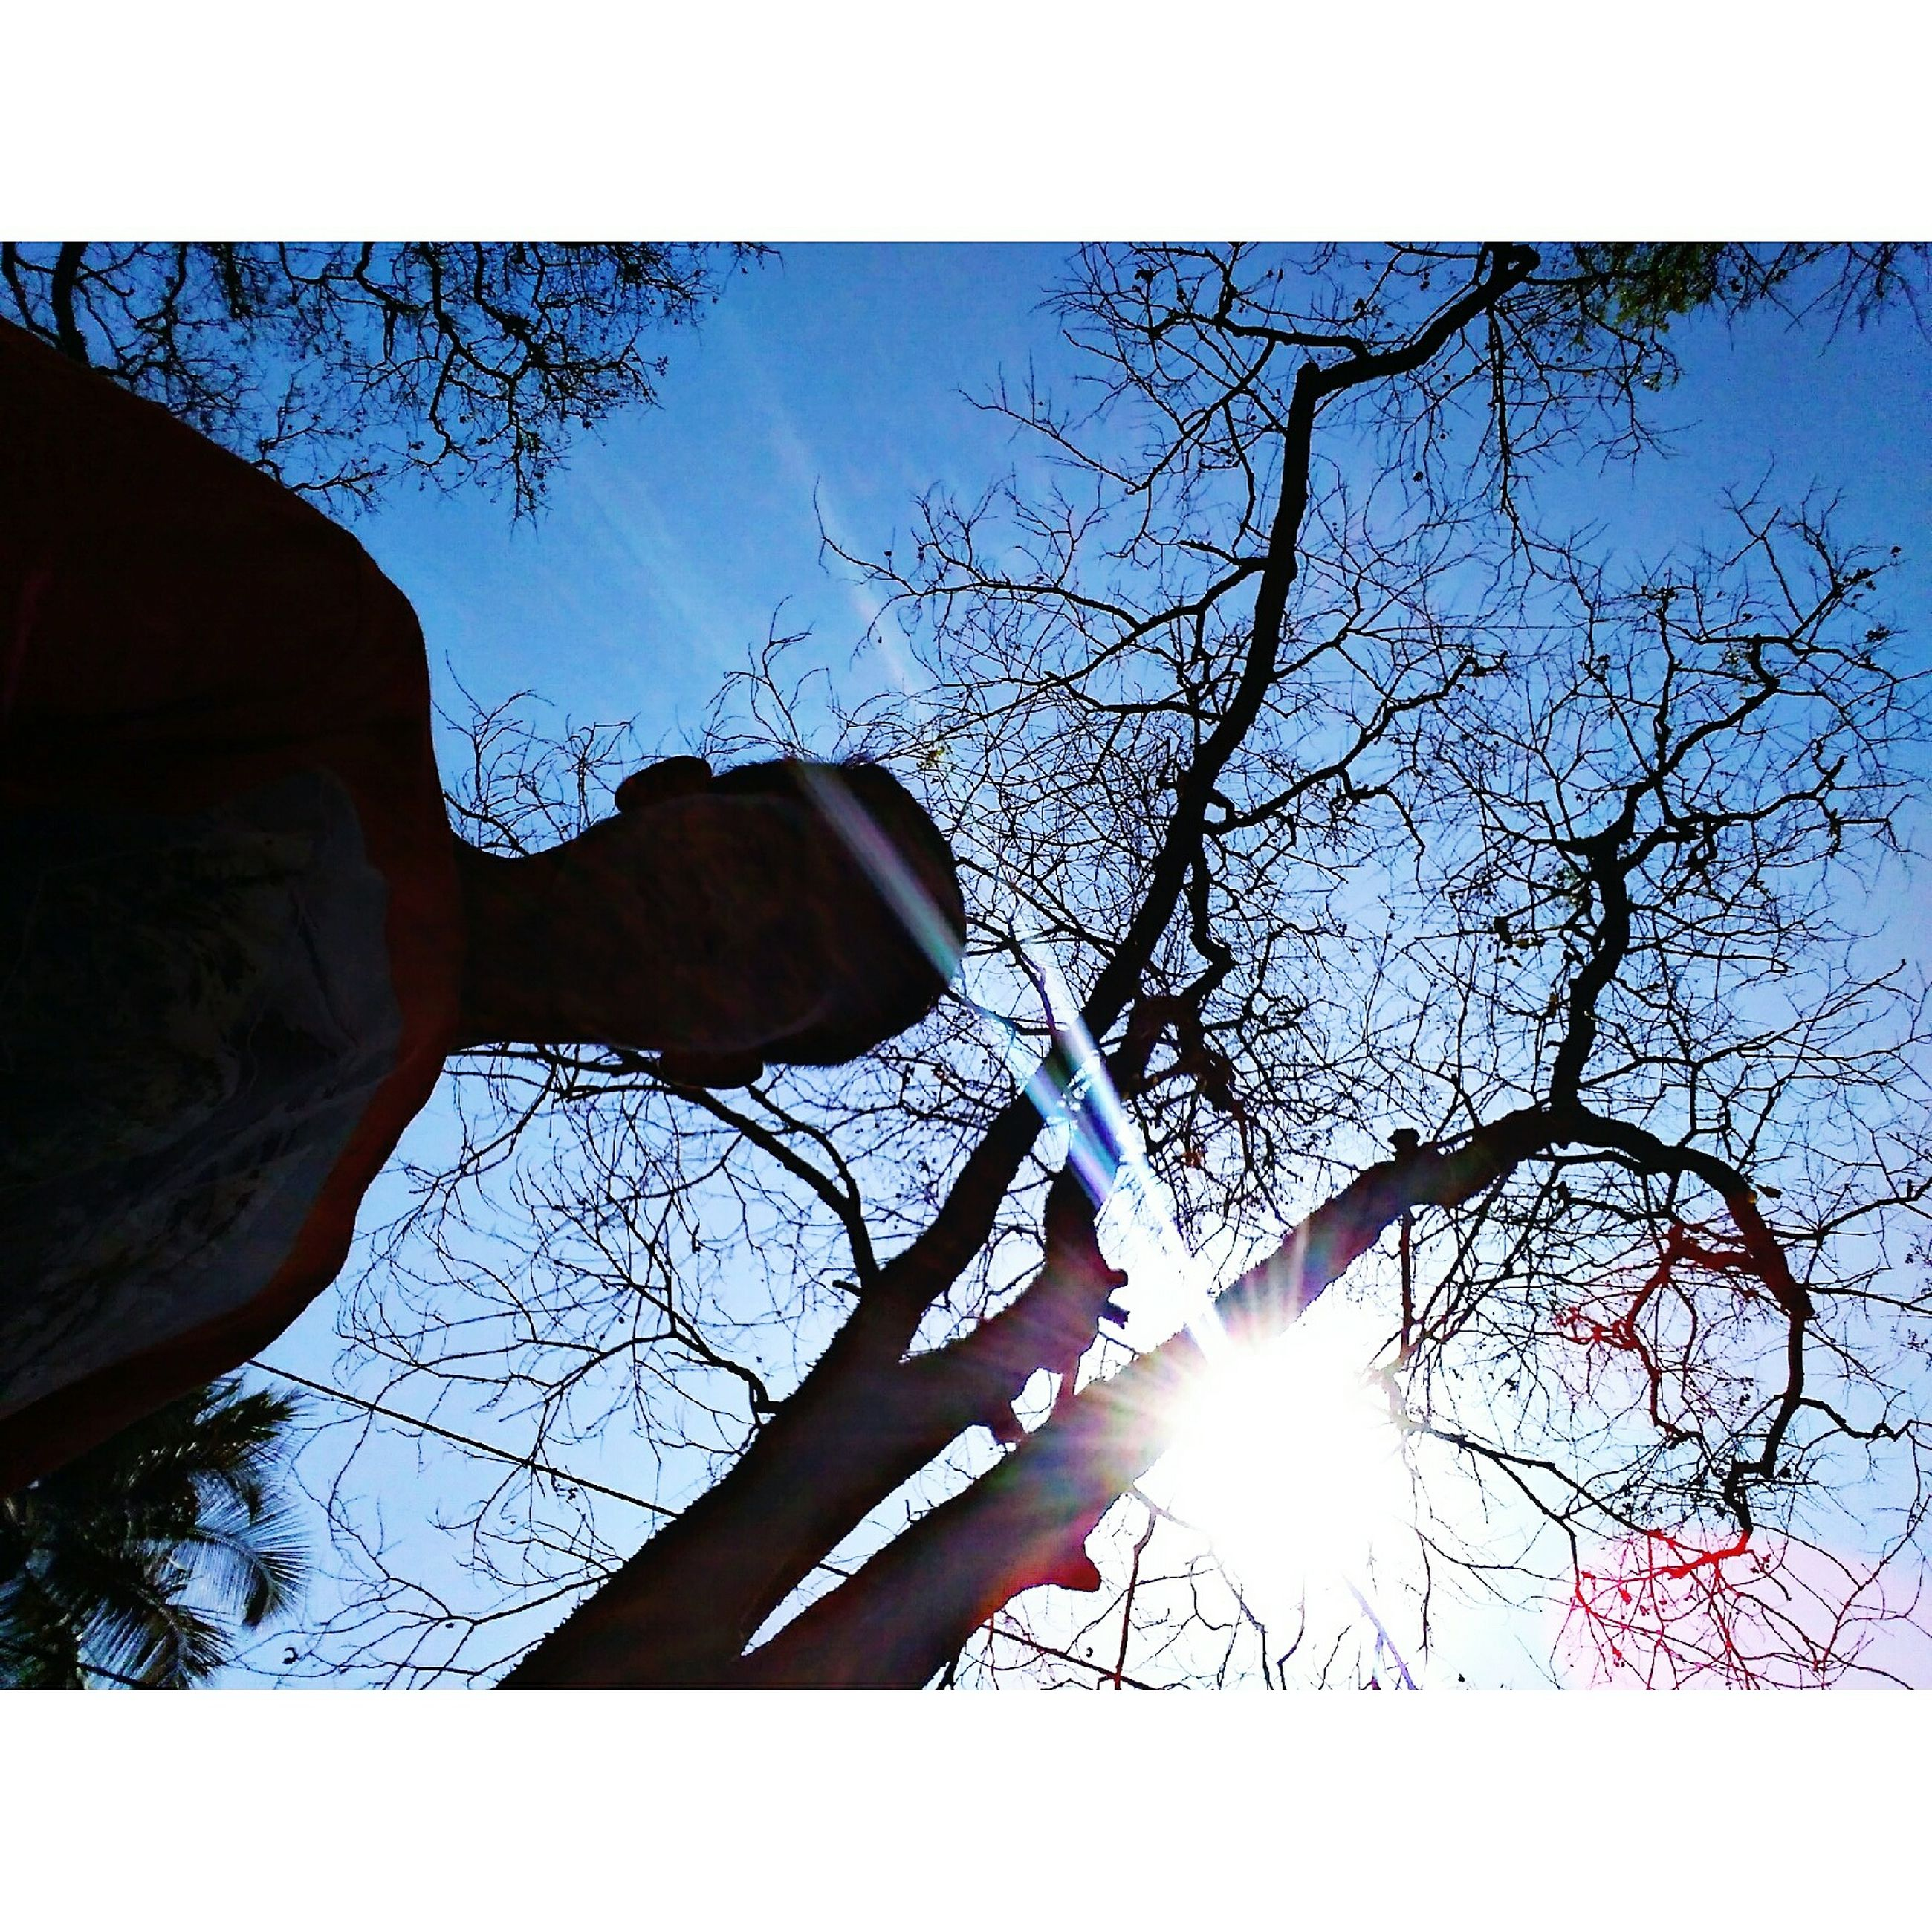 sunlight, lens flare, tree, sun, bare tree, sunbeam, one person, branch, outdoors, human hand, real people, day, low angle view, sky, clear sky, built structure, building exterior, nature, human body part, architecture, close-up, people